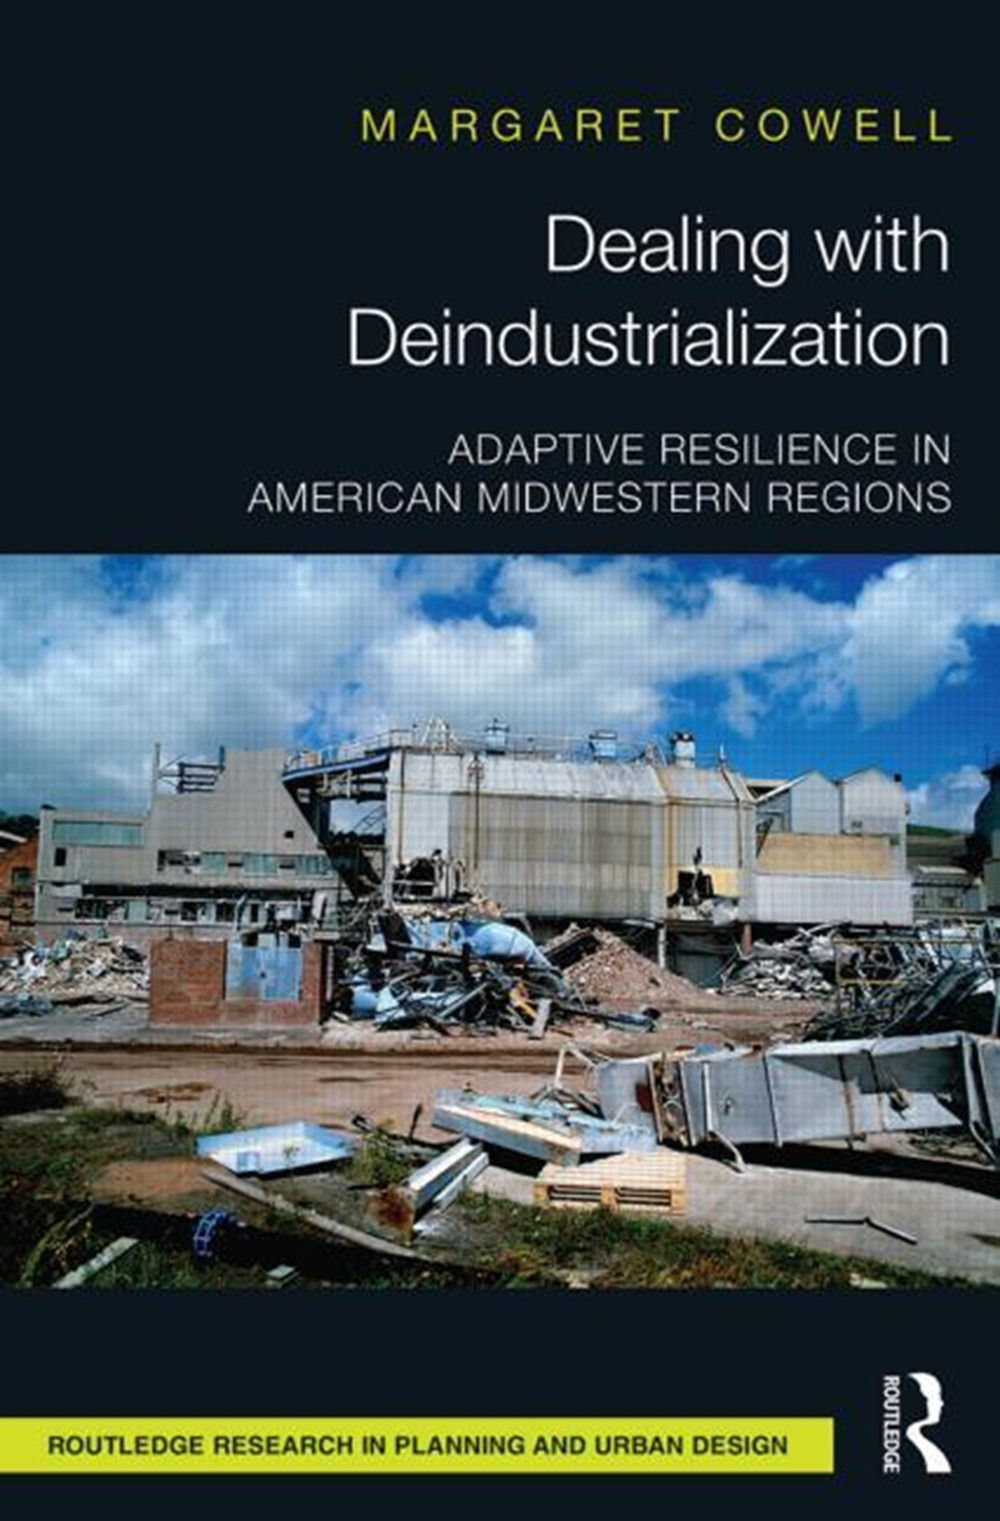 Dealing with Deindustrialization Adaptive Resilience in American Midwestern Regions